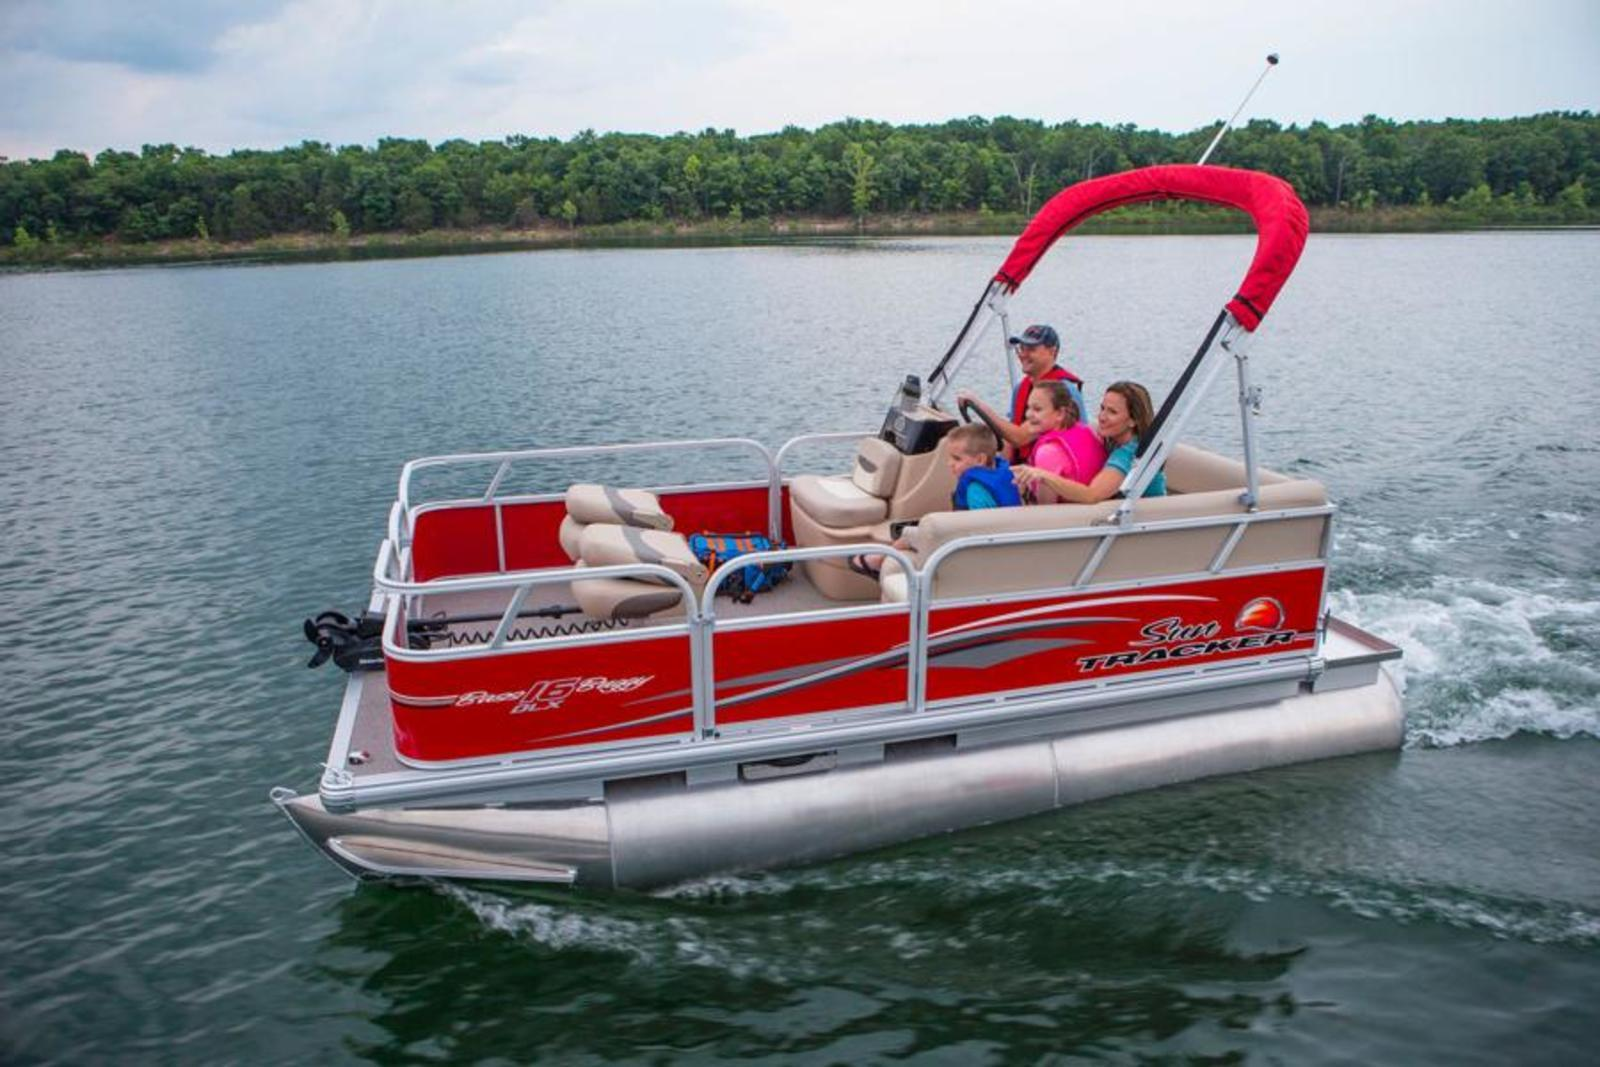 2015 sun tracker bass buggy 16 dlx et review top speed for Electric motor for pontoon boat